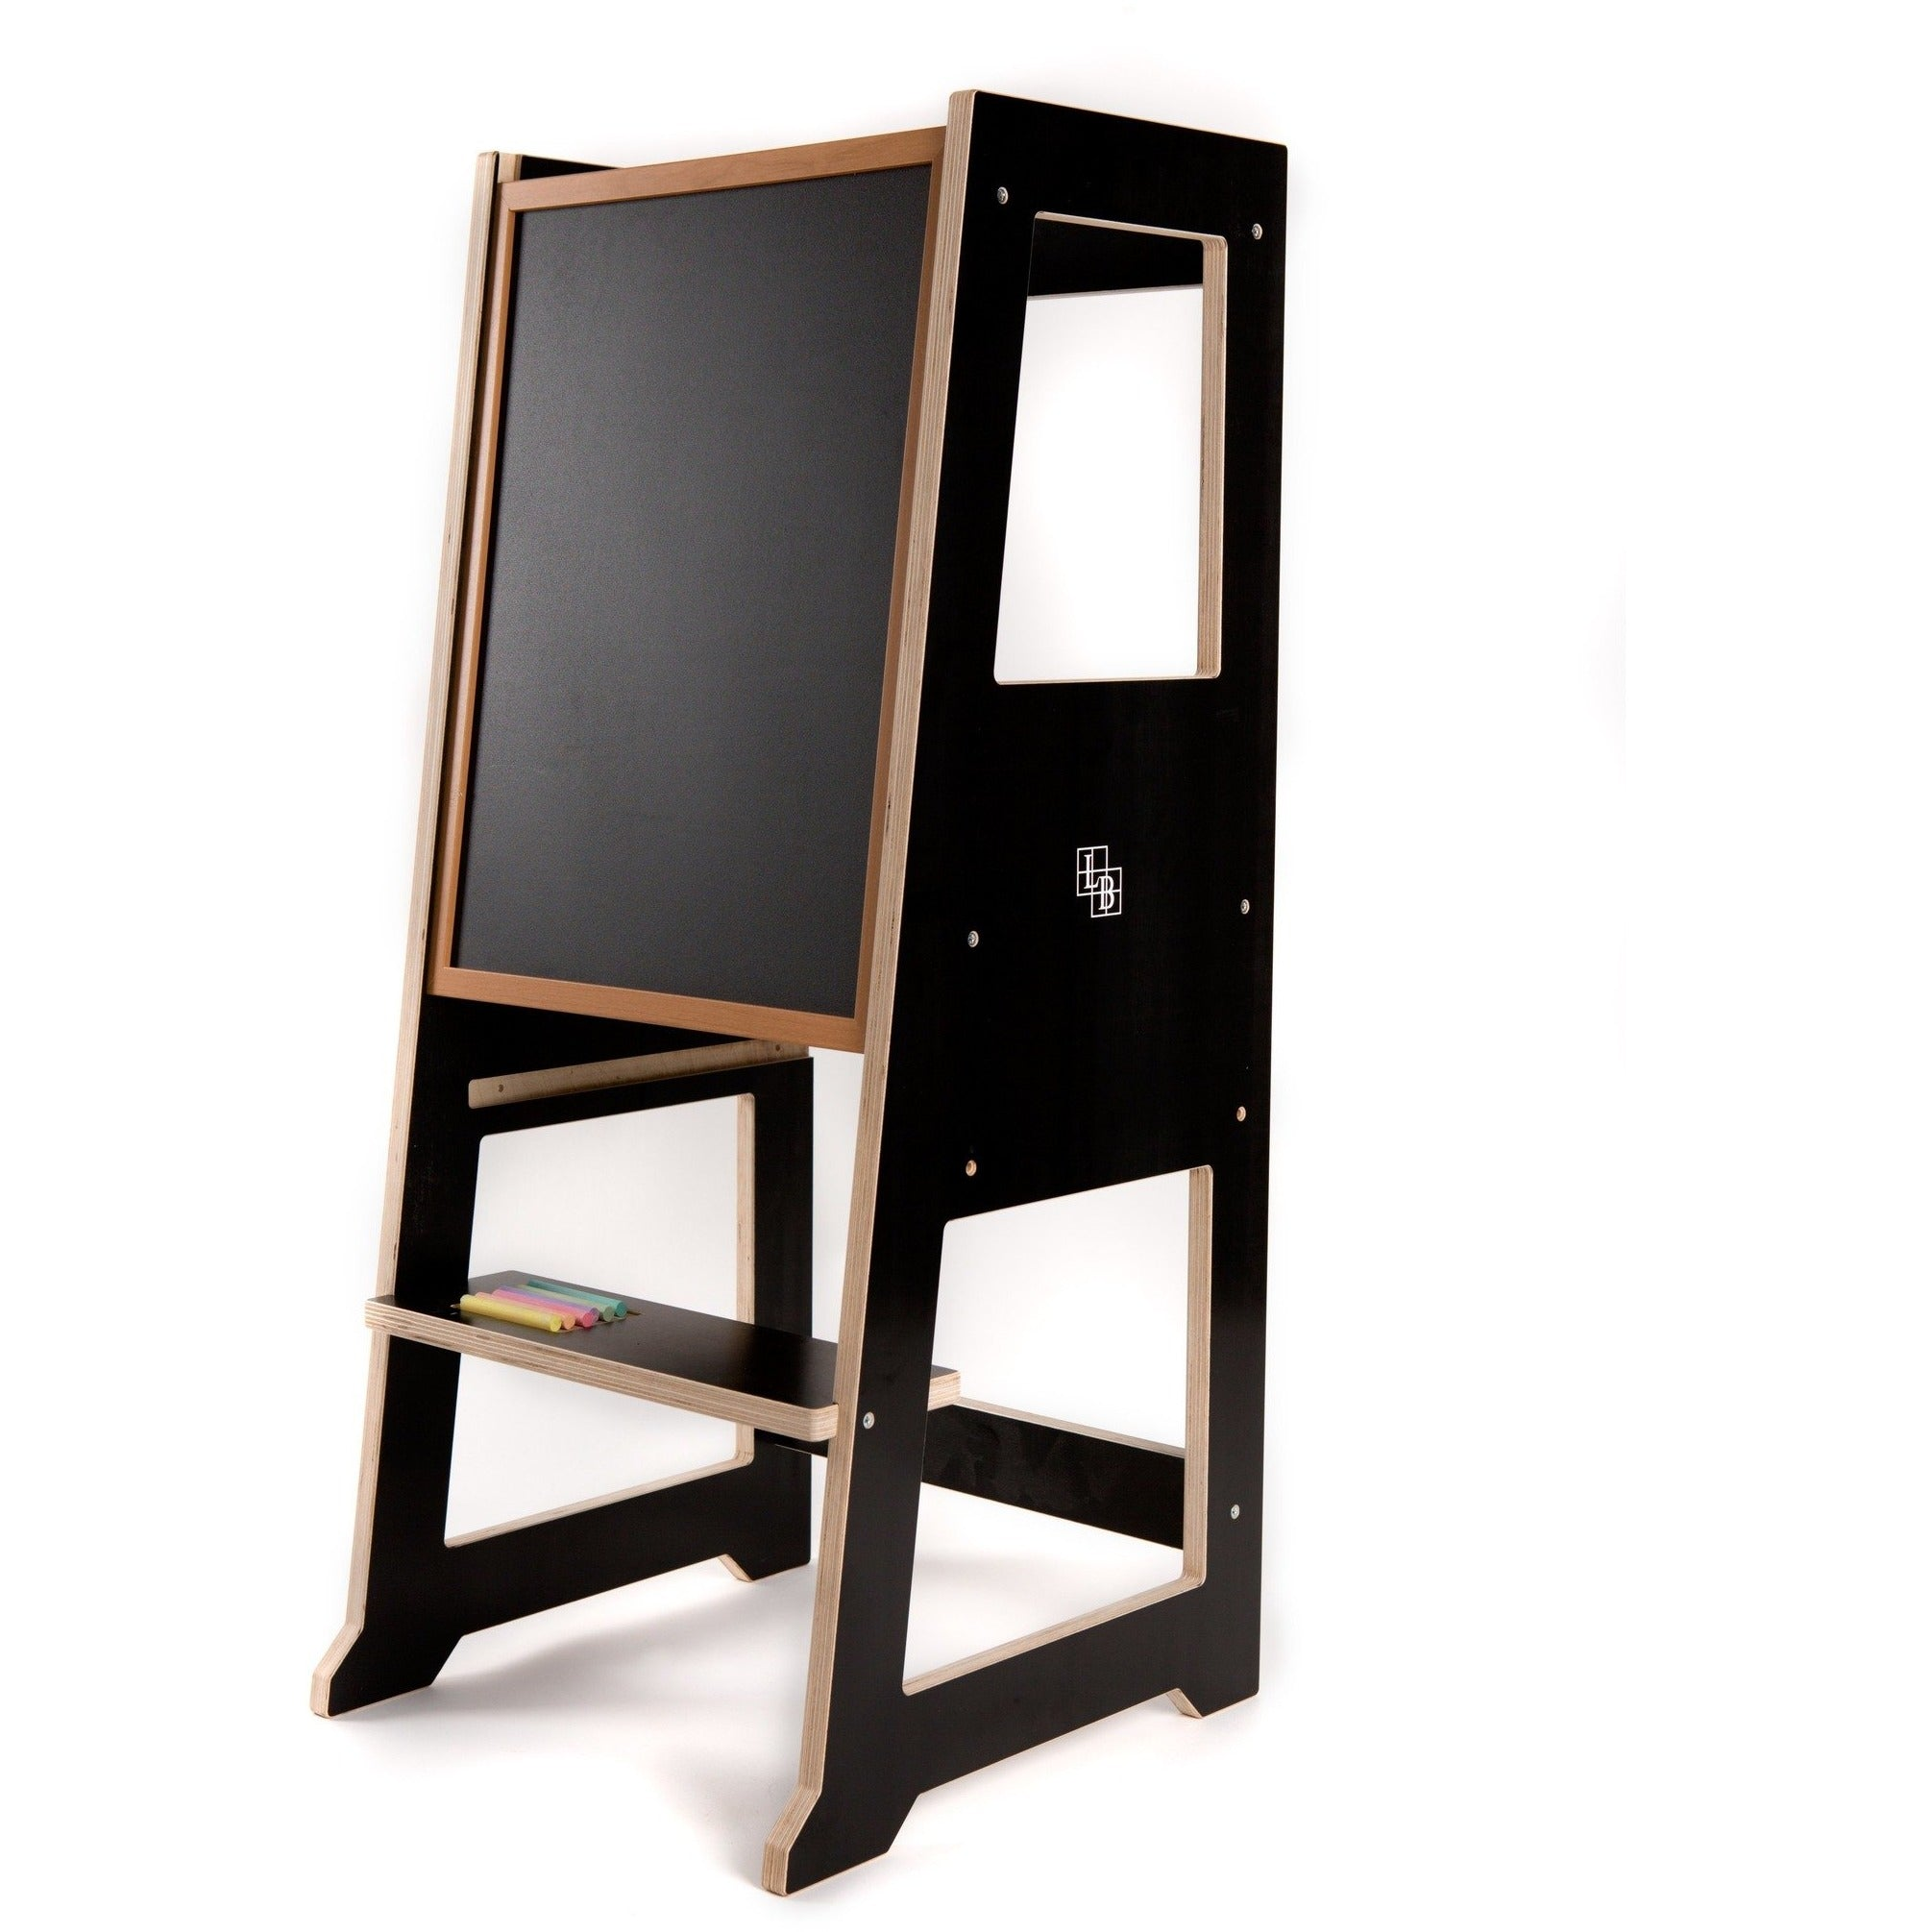 Slimline Learning Tower in Industrial Black